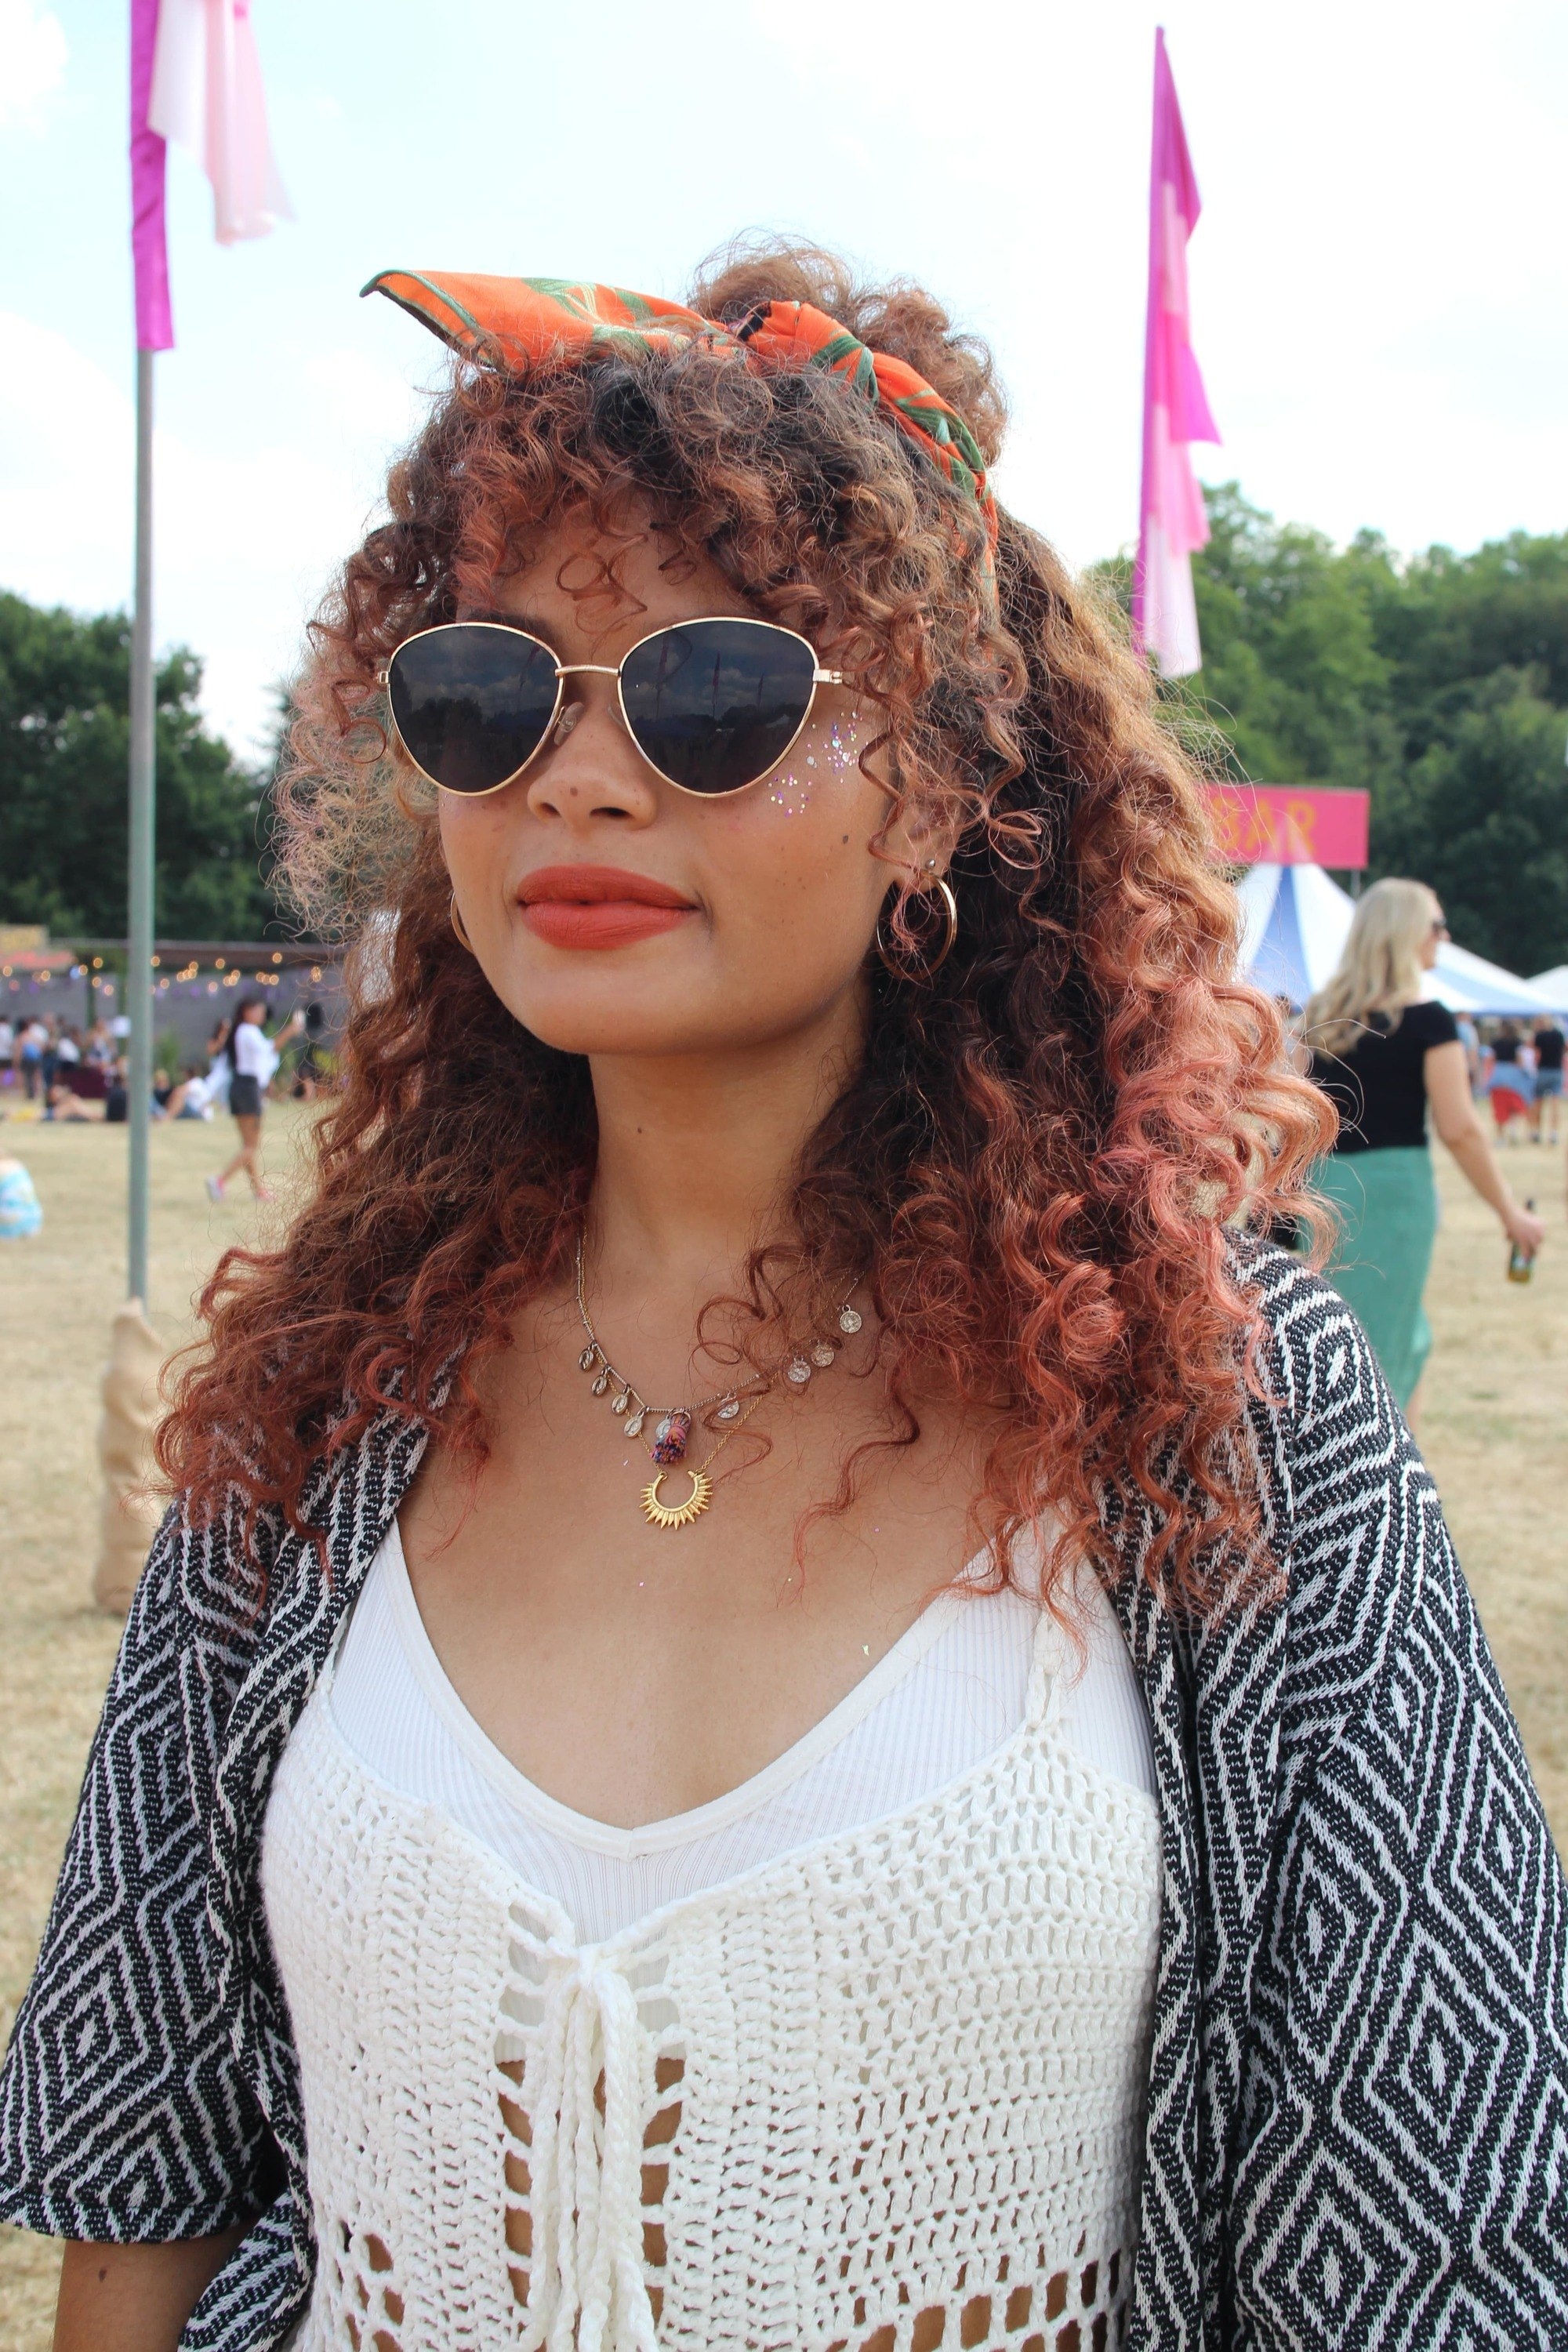 Festival hair accessories: Woman with naturally curly hair styled in a half-up, half-down bun wrapped in a headscarf